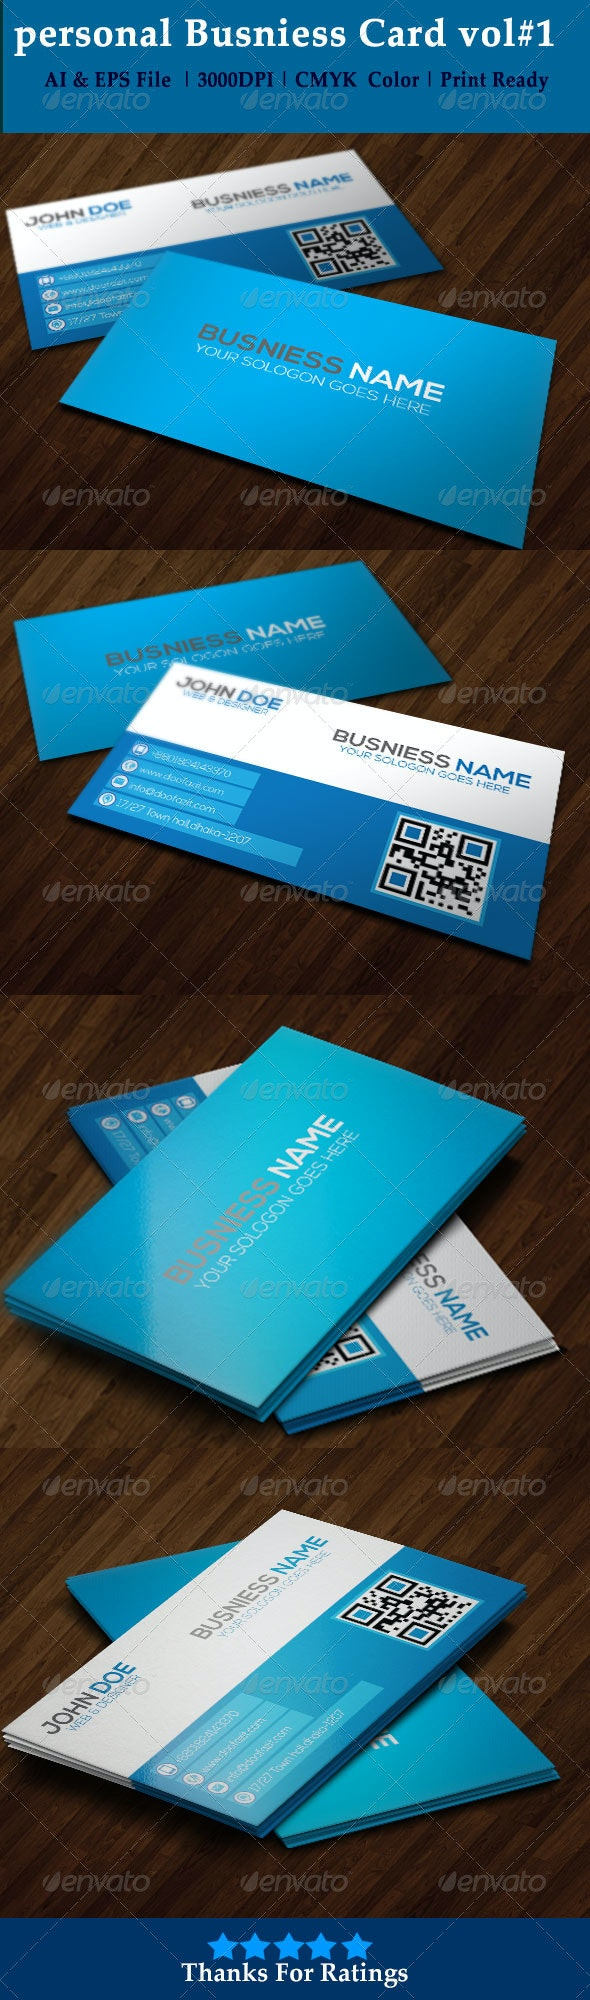 Personal Business Card Vol#1 - Creative Business Cards